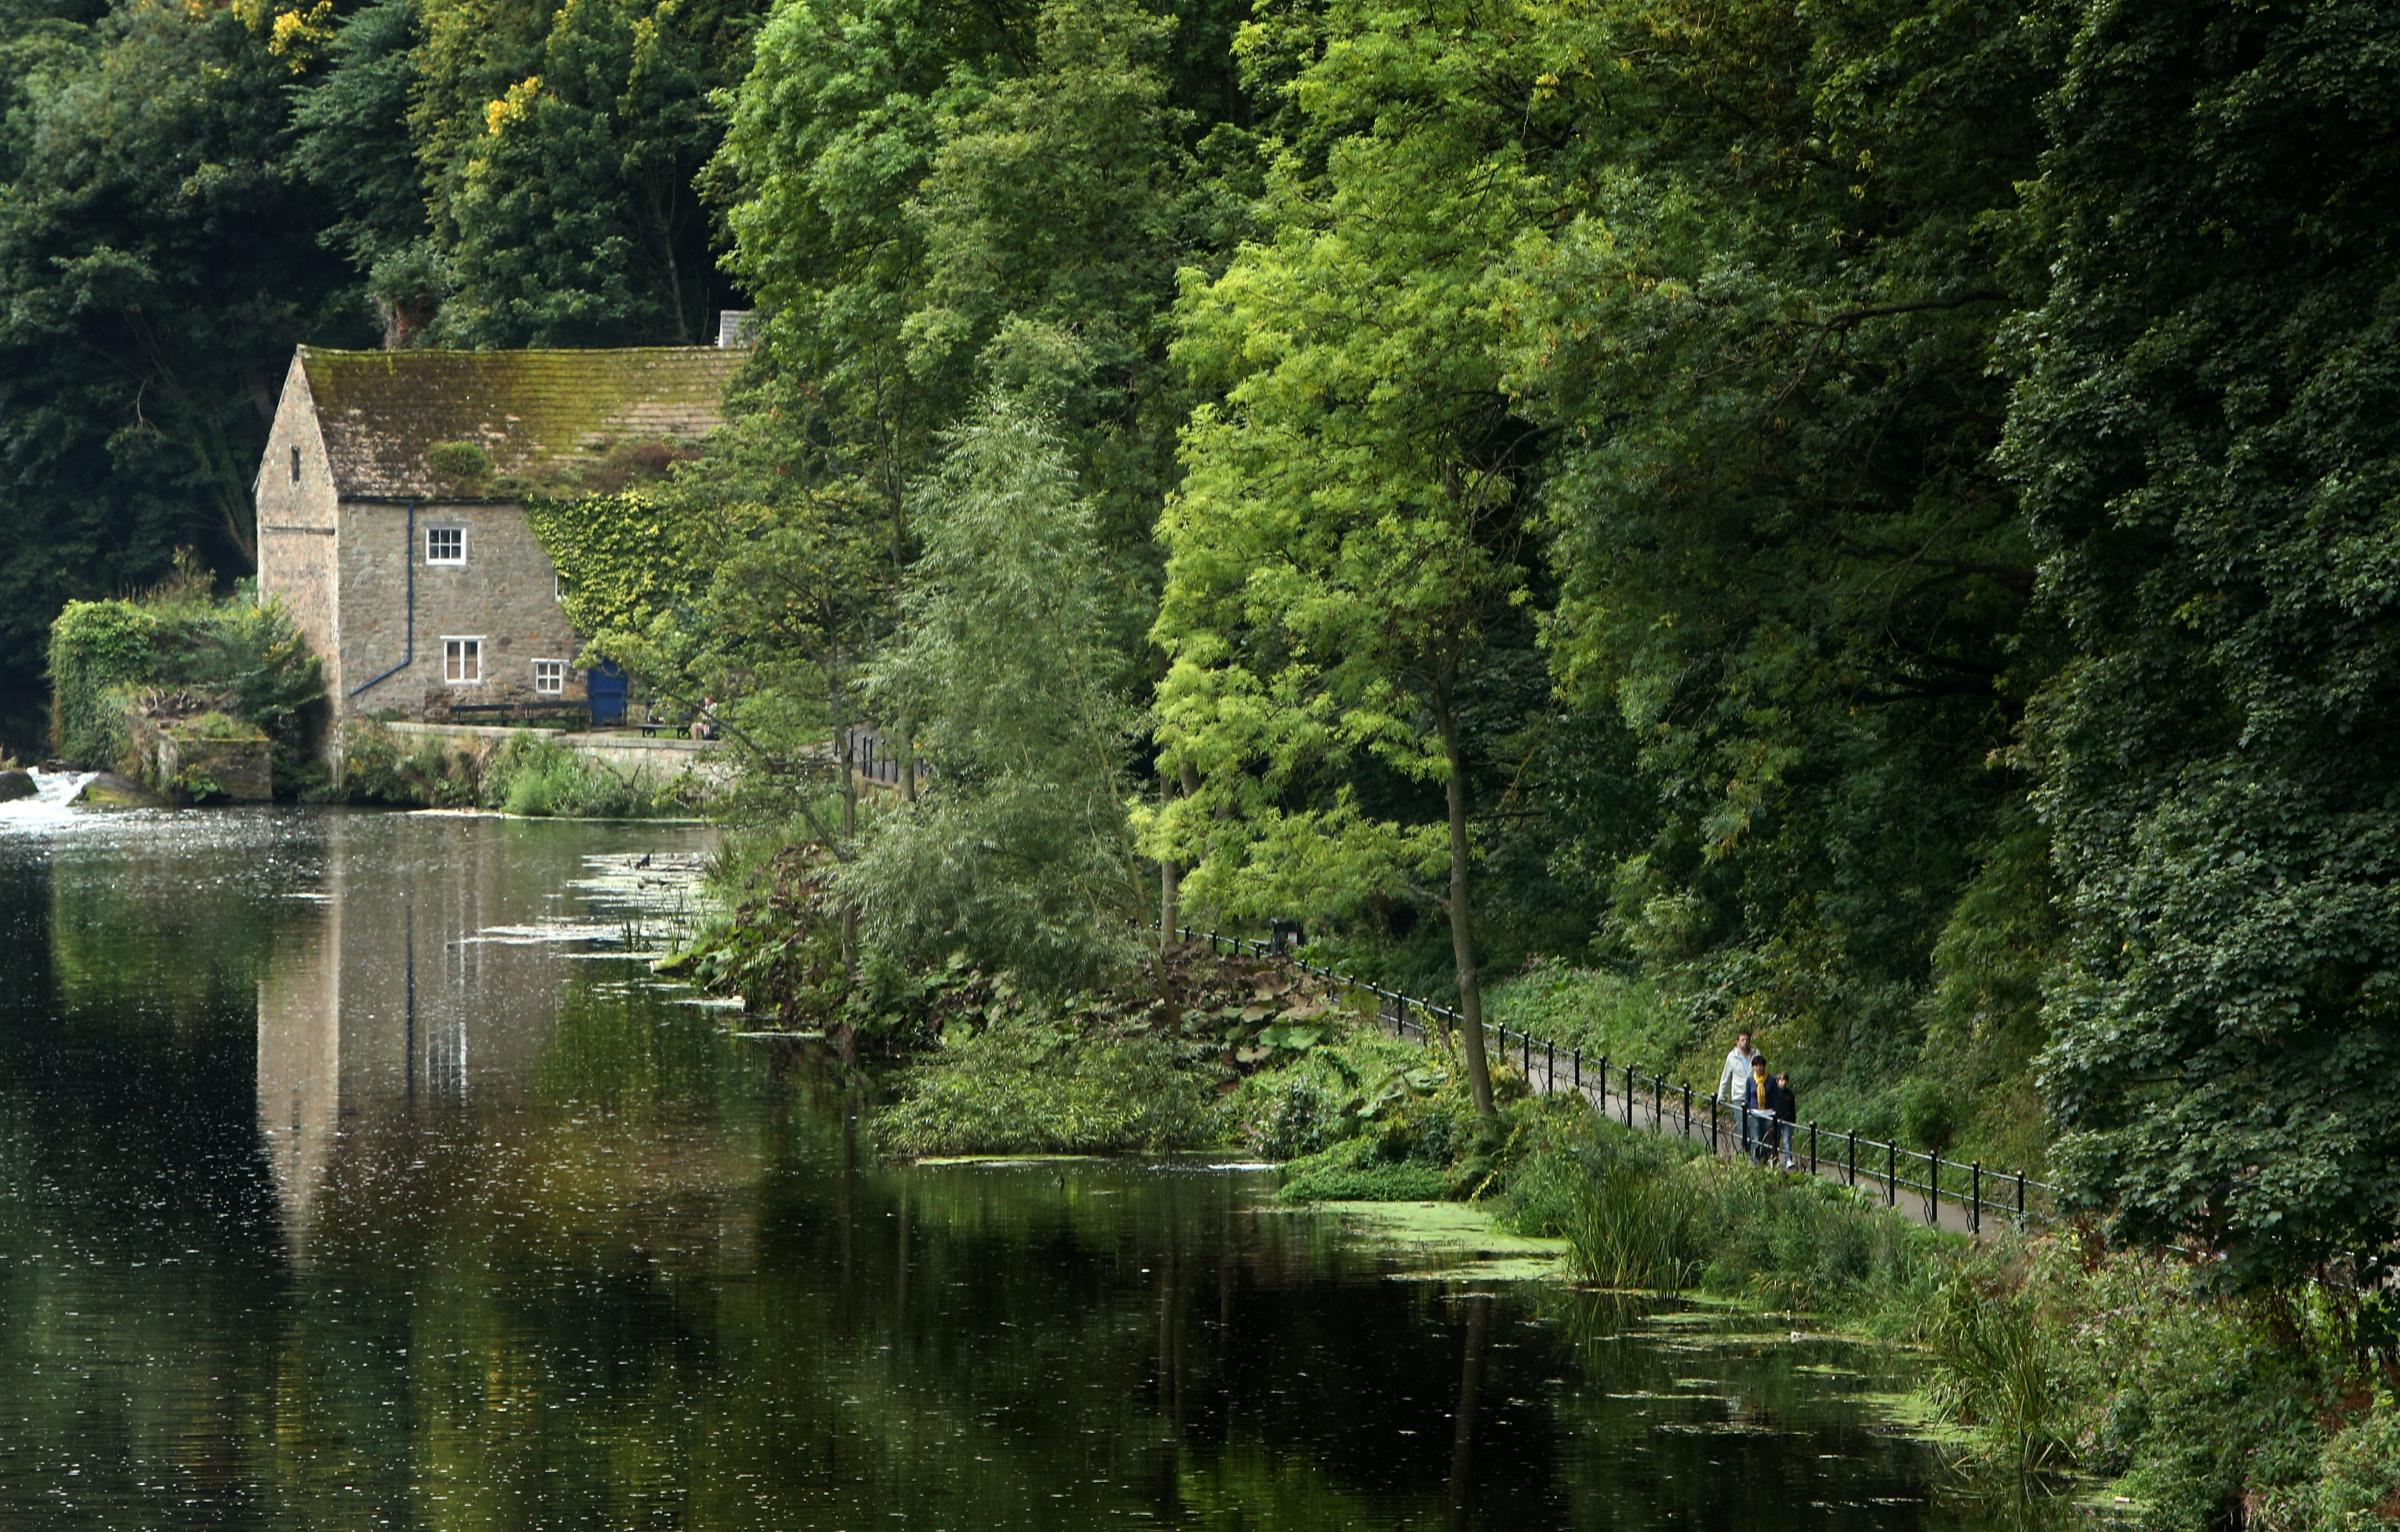 Man S Body Recovered From River In Durham City The Northern Echo